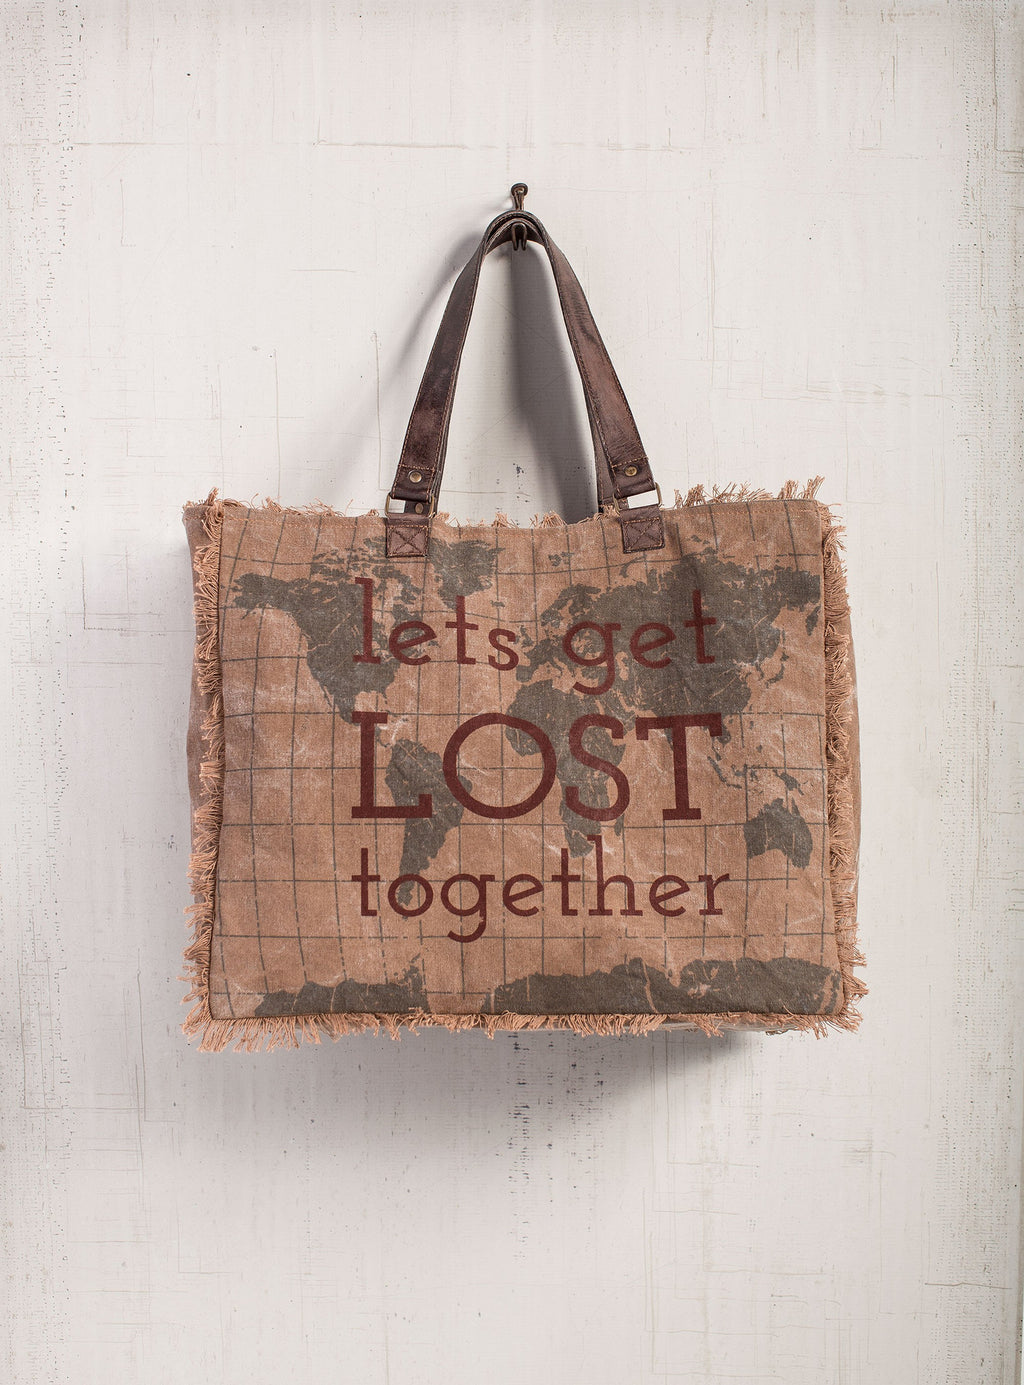 Lets Get Lost - Reclaimed Canvas Weekender Tote